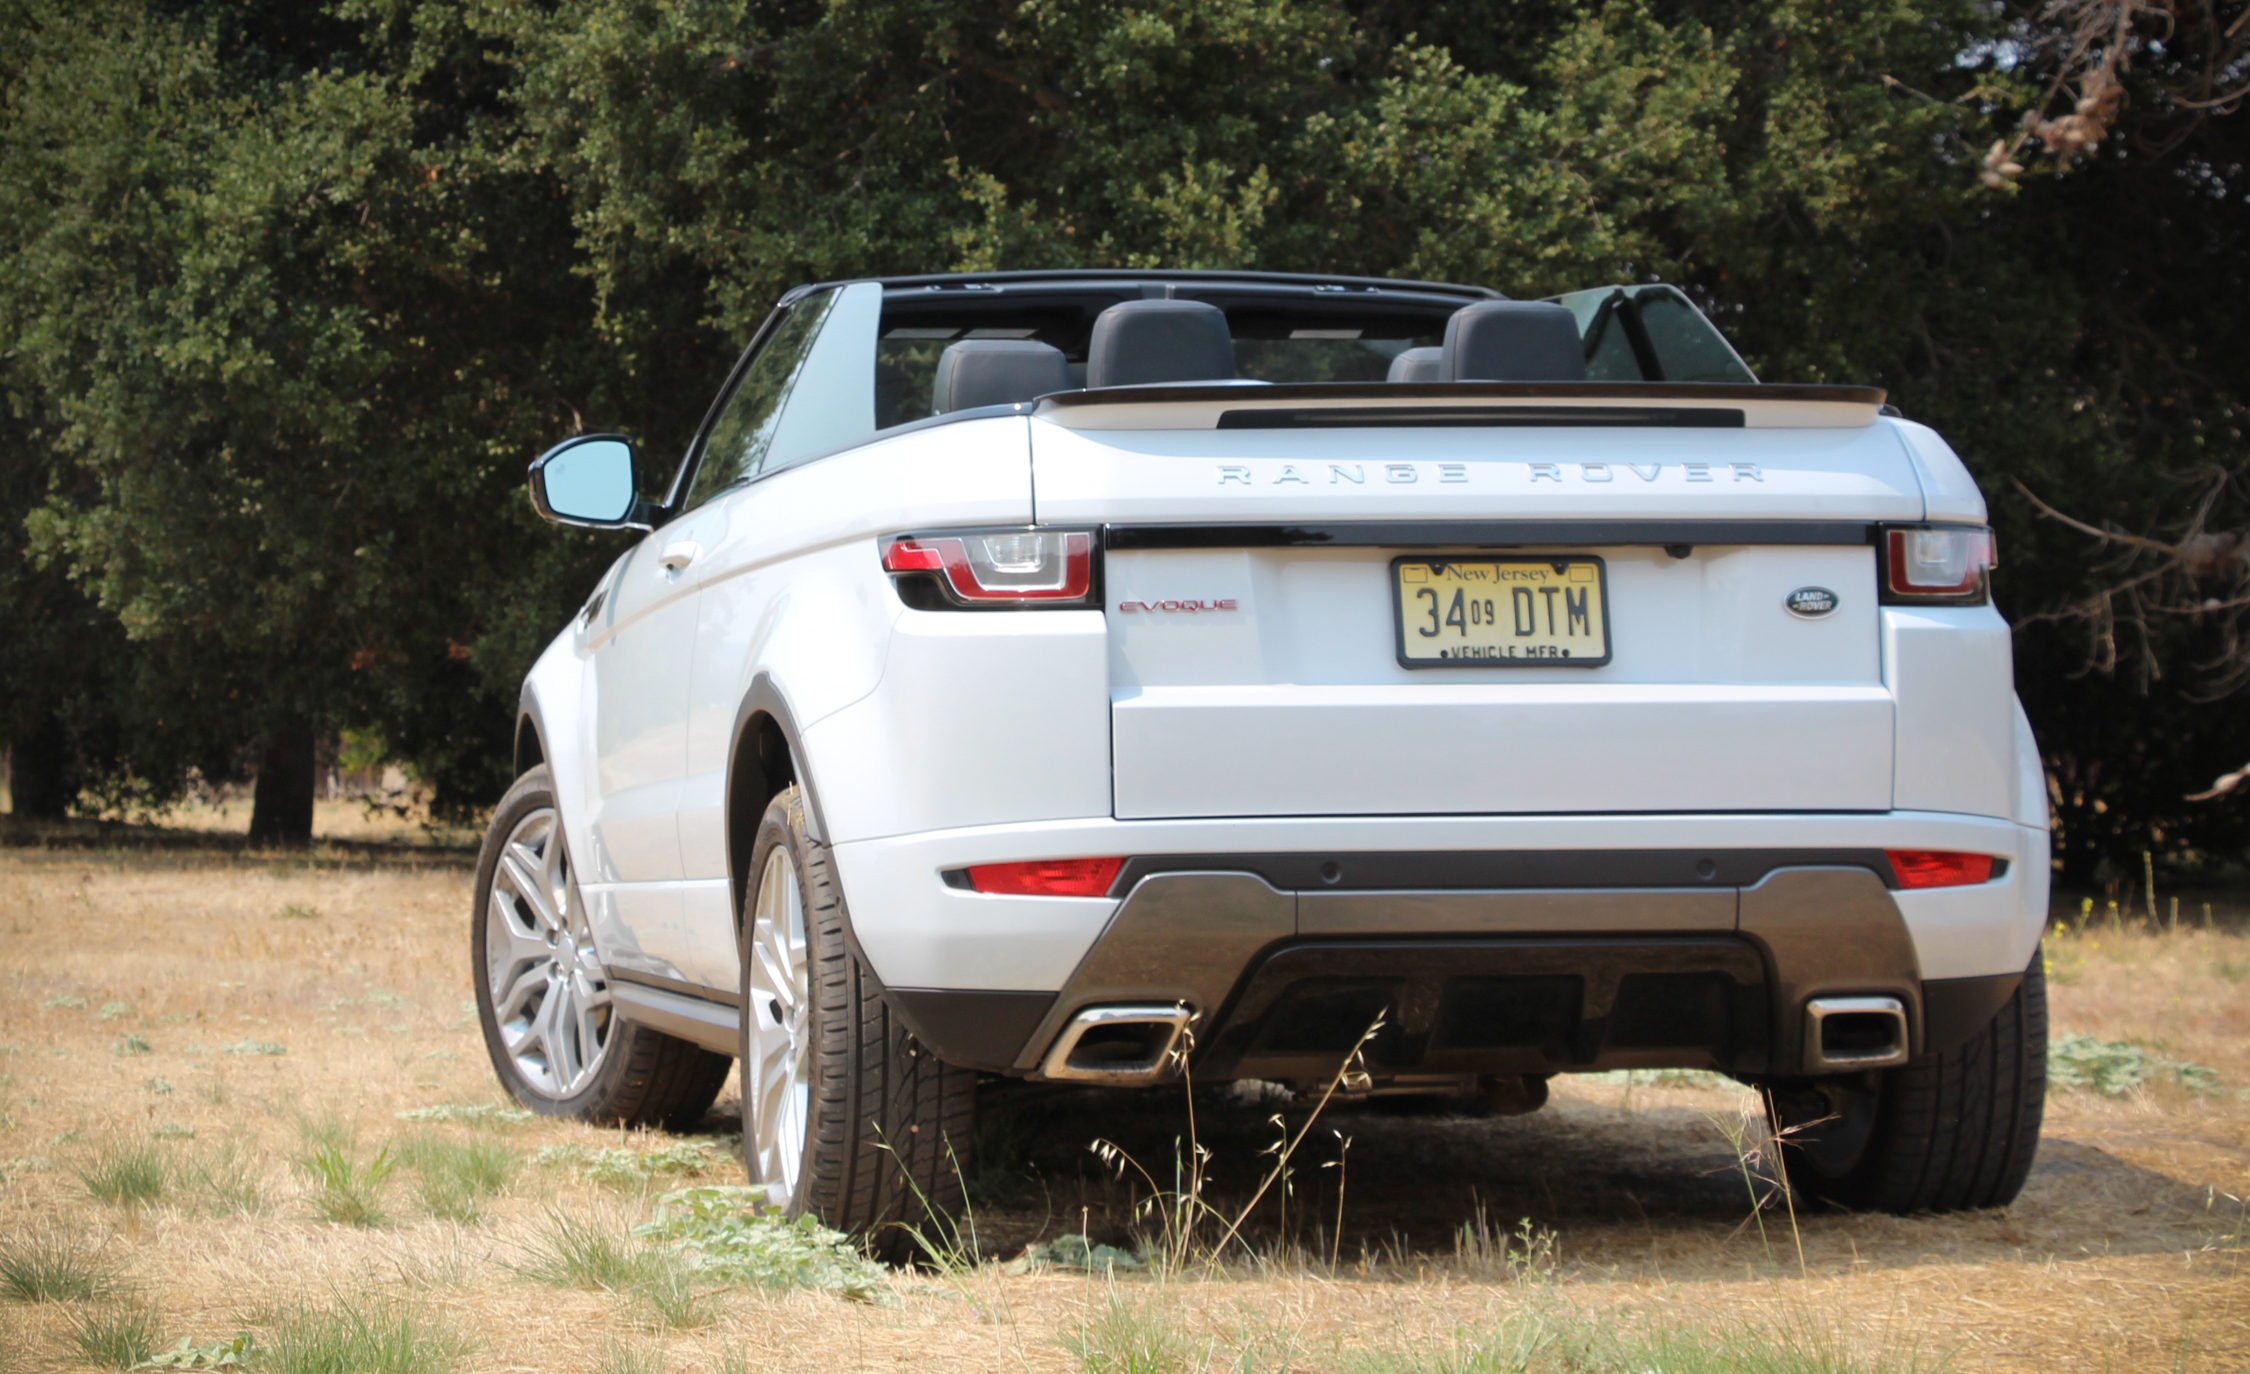 2017 Land Rover Range Rover Evoque Convertible Exterior Open Roof Rear Side (Photo 8 of 14)